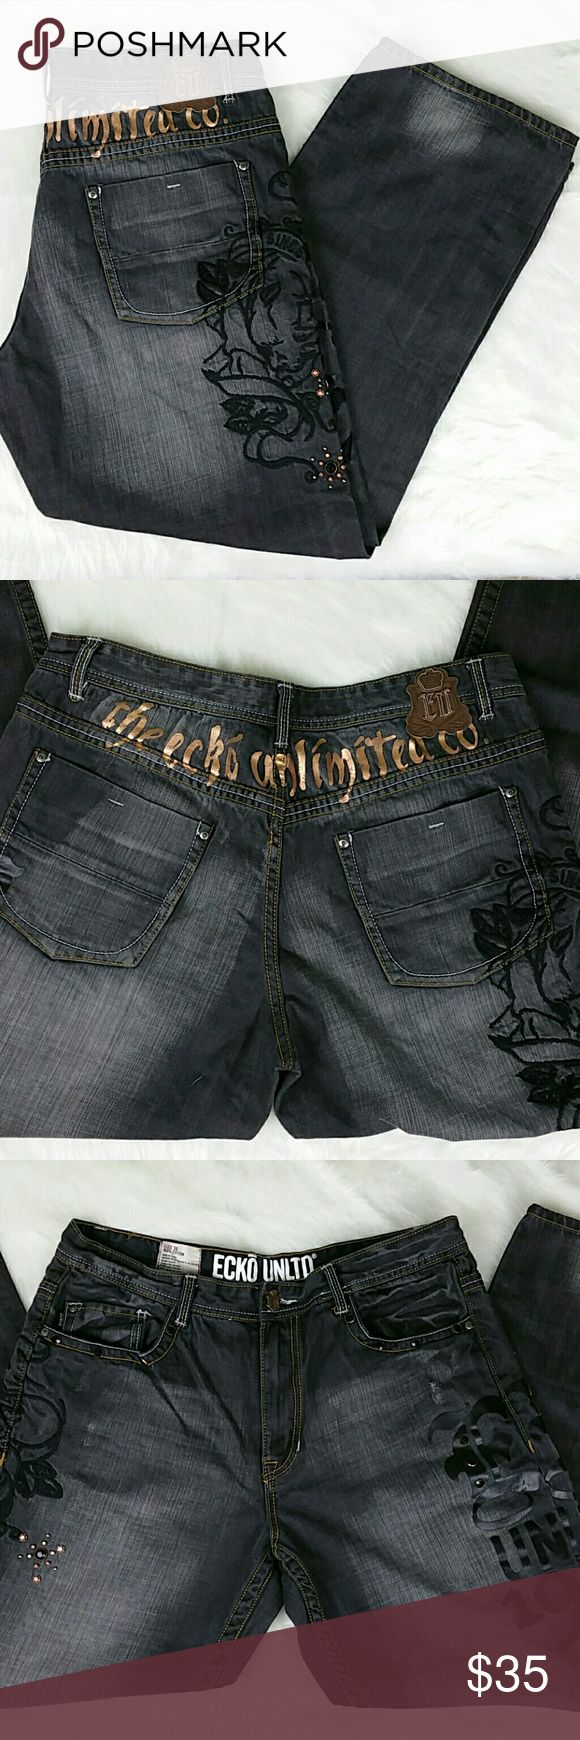 ECHO UNLIMITED HIP-HOP PAINTED & EMBROIDERED JEANS ECHO UNLIMITED~ HIP-HOP PAINTED & EMBROIDERED DARK JEANS 38 X 32 Condition: gentley pre-owned Size: 38W X 32L Fit: Baggy Measurements: See photo # 7 Material: 100% Cotton Ecko Unlimited Jeans Relaxed